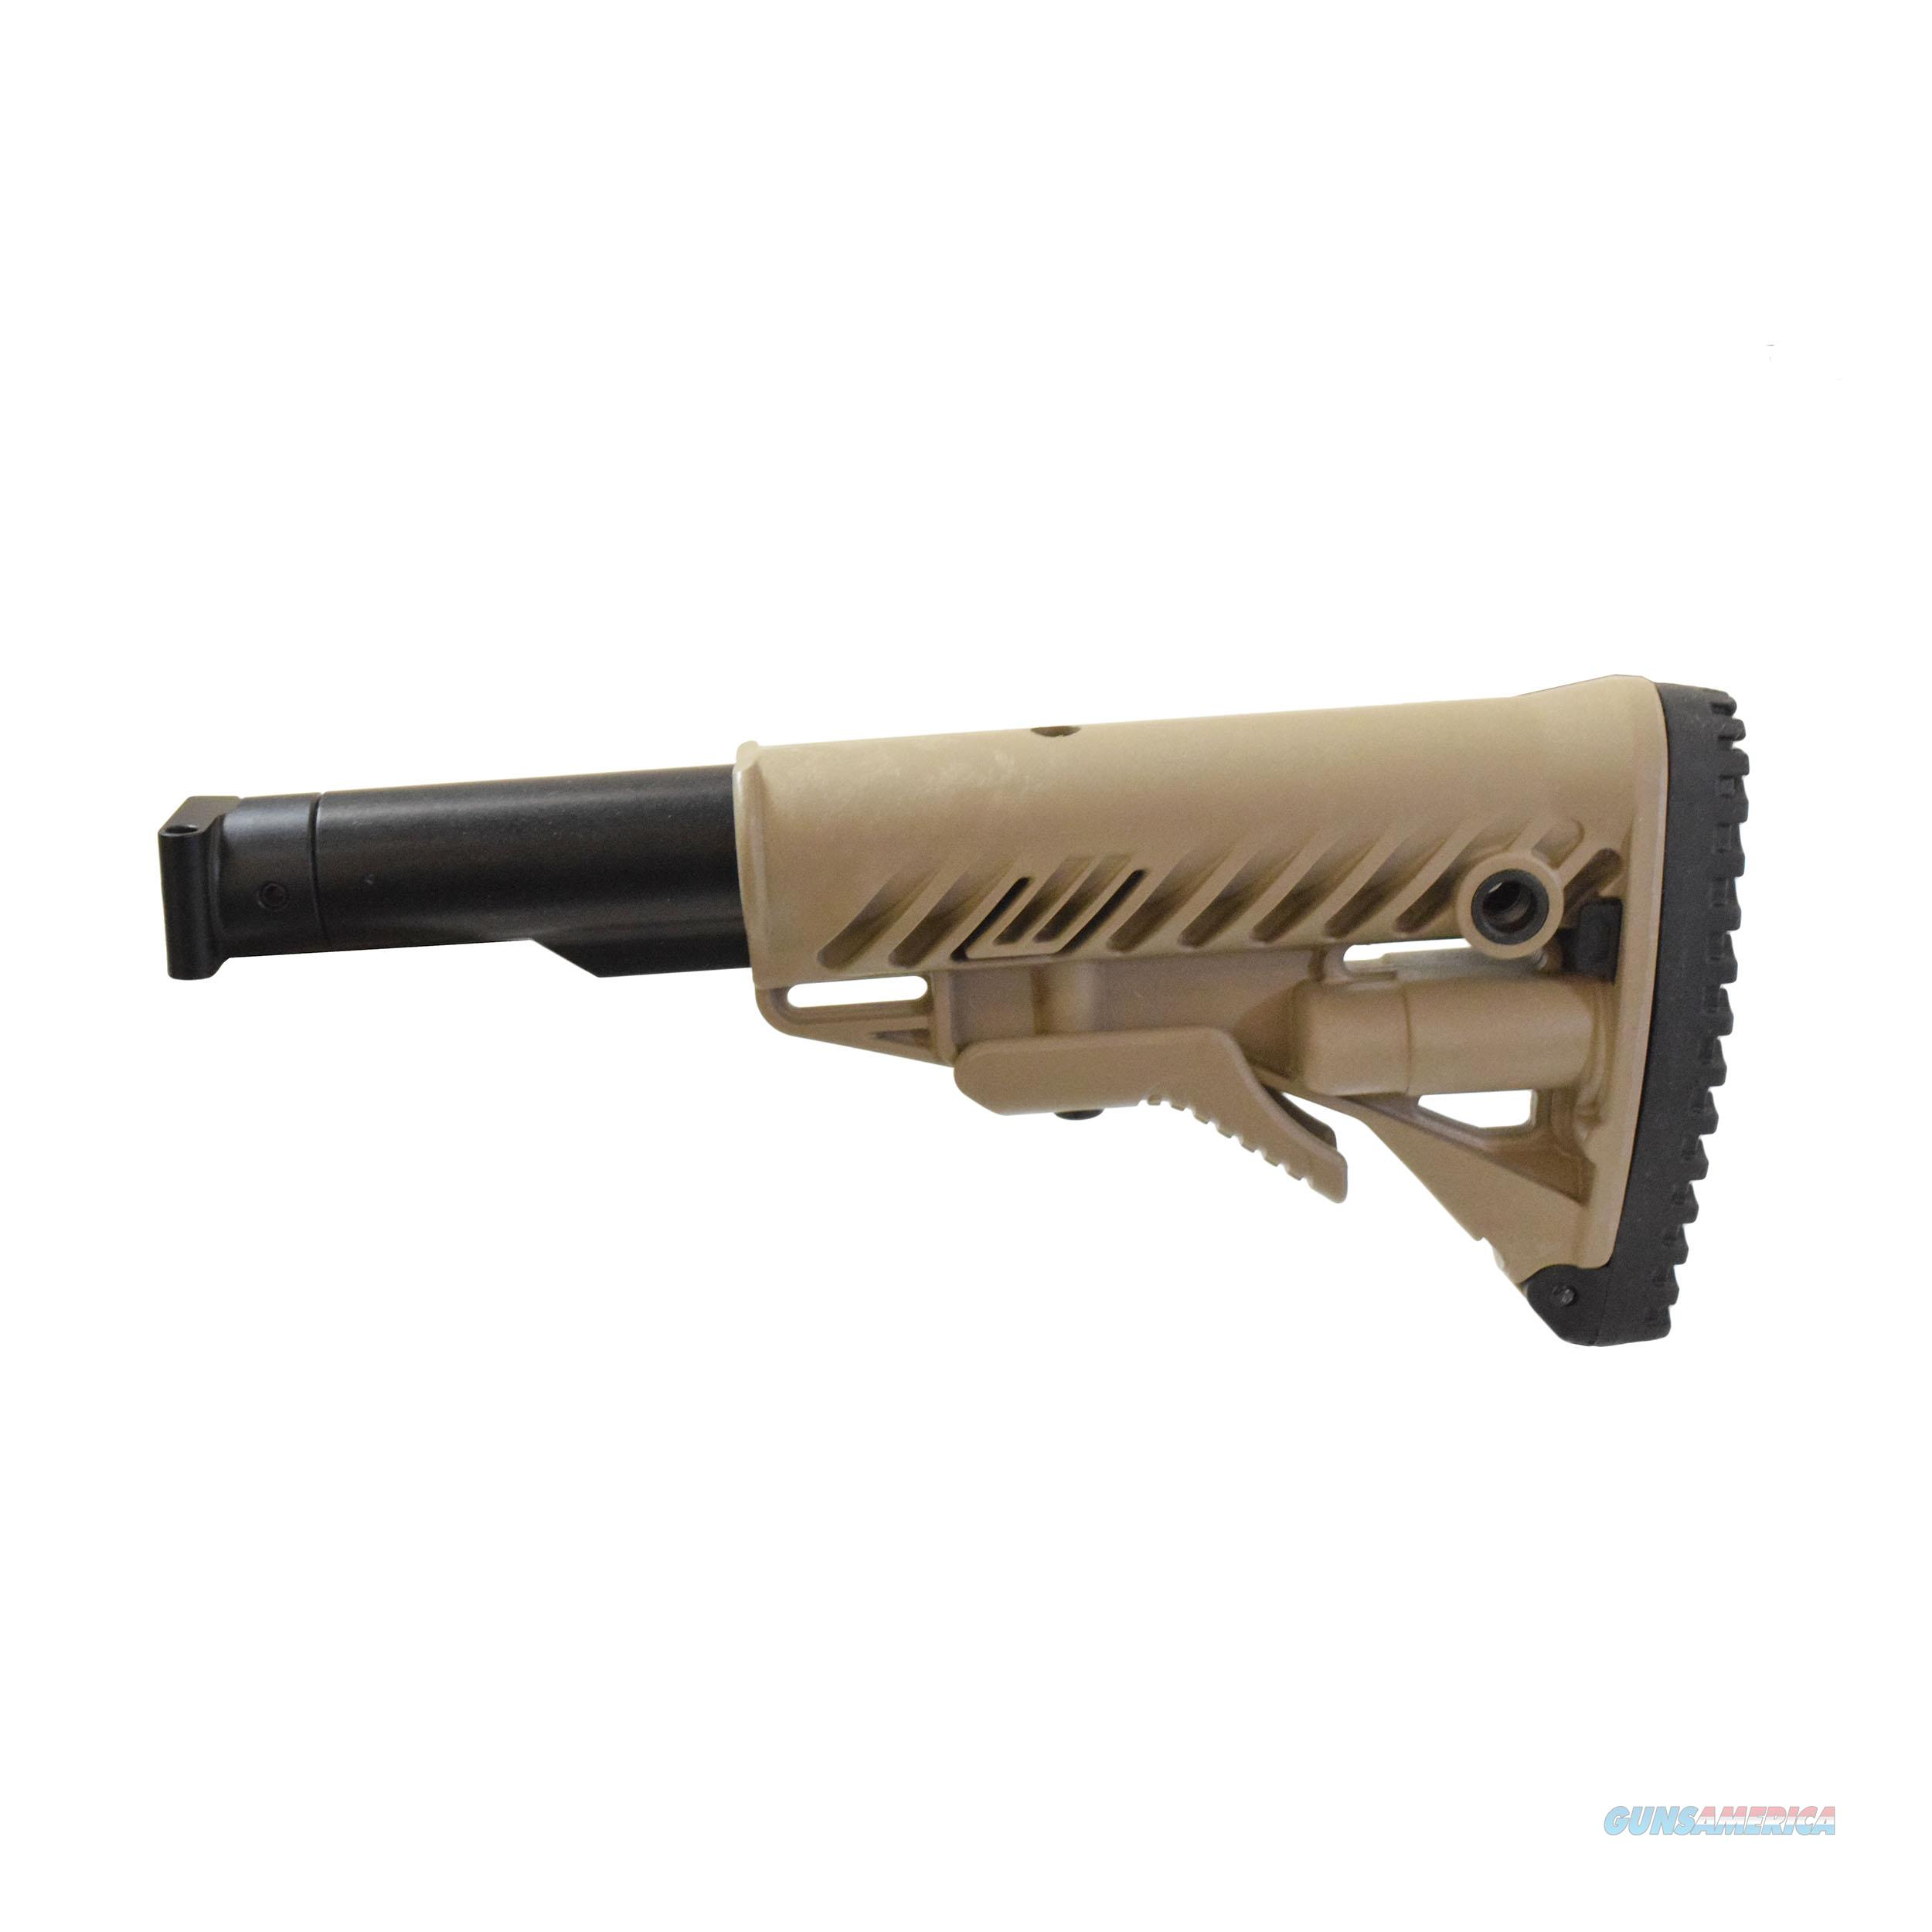 Mako Group Folding Ccollapsible Buttstock System M4-SAIGA-FDE  Non-Guns > Gunstocks, Grips & Wood